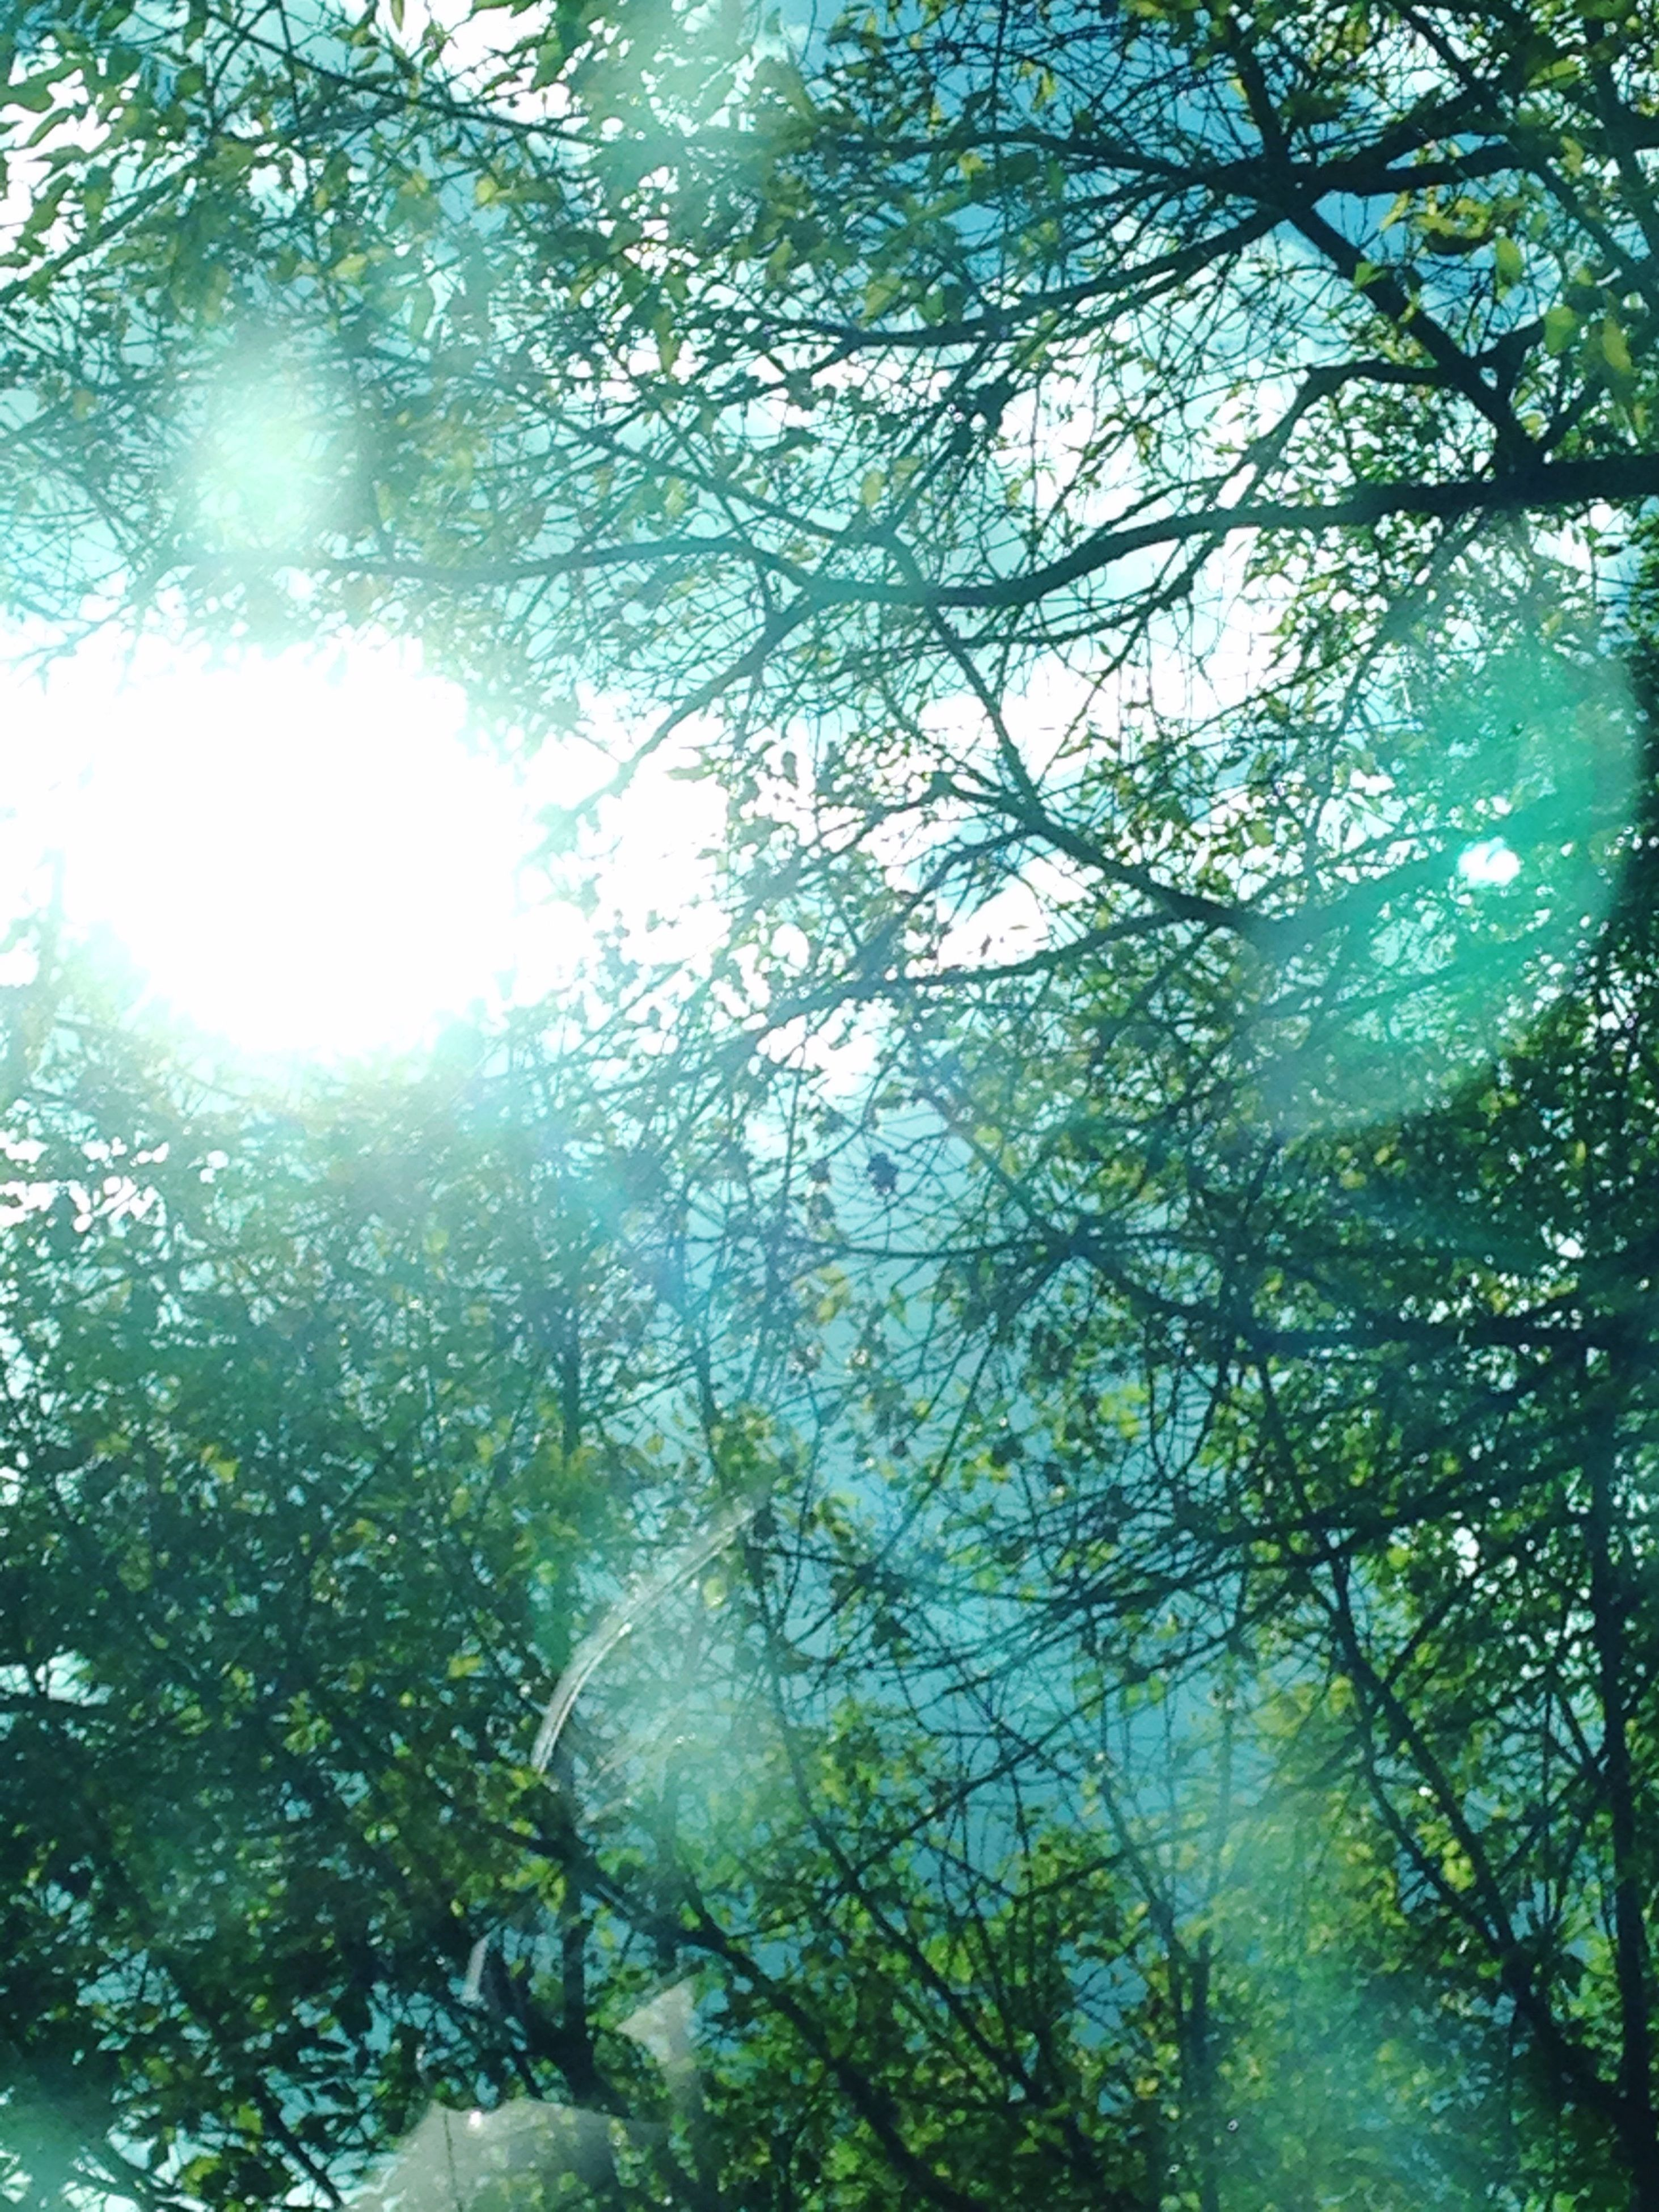 sun, branch, tree, sunlight, sunbeam, low angle view, lens flare, growth, green color, scenics, beauty in nature, bright, tranquil scene, sunny, nature, tranquility, brightly lit, day, sky, full frame, outdoors, non-urban scene, blue, back lit, green, woodland, lush foliage, majestic, streaming, solar flare, vacations